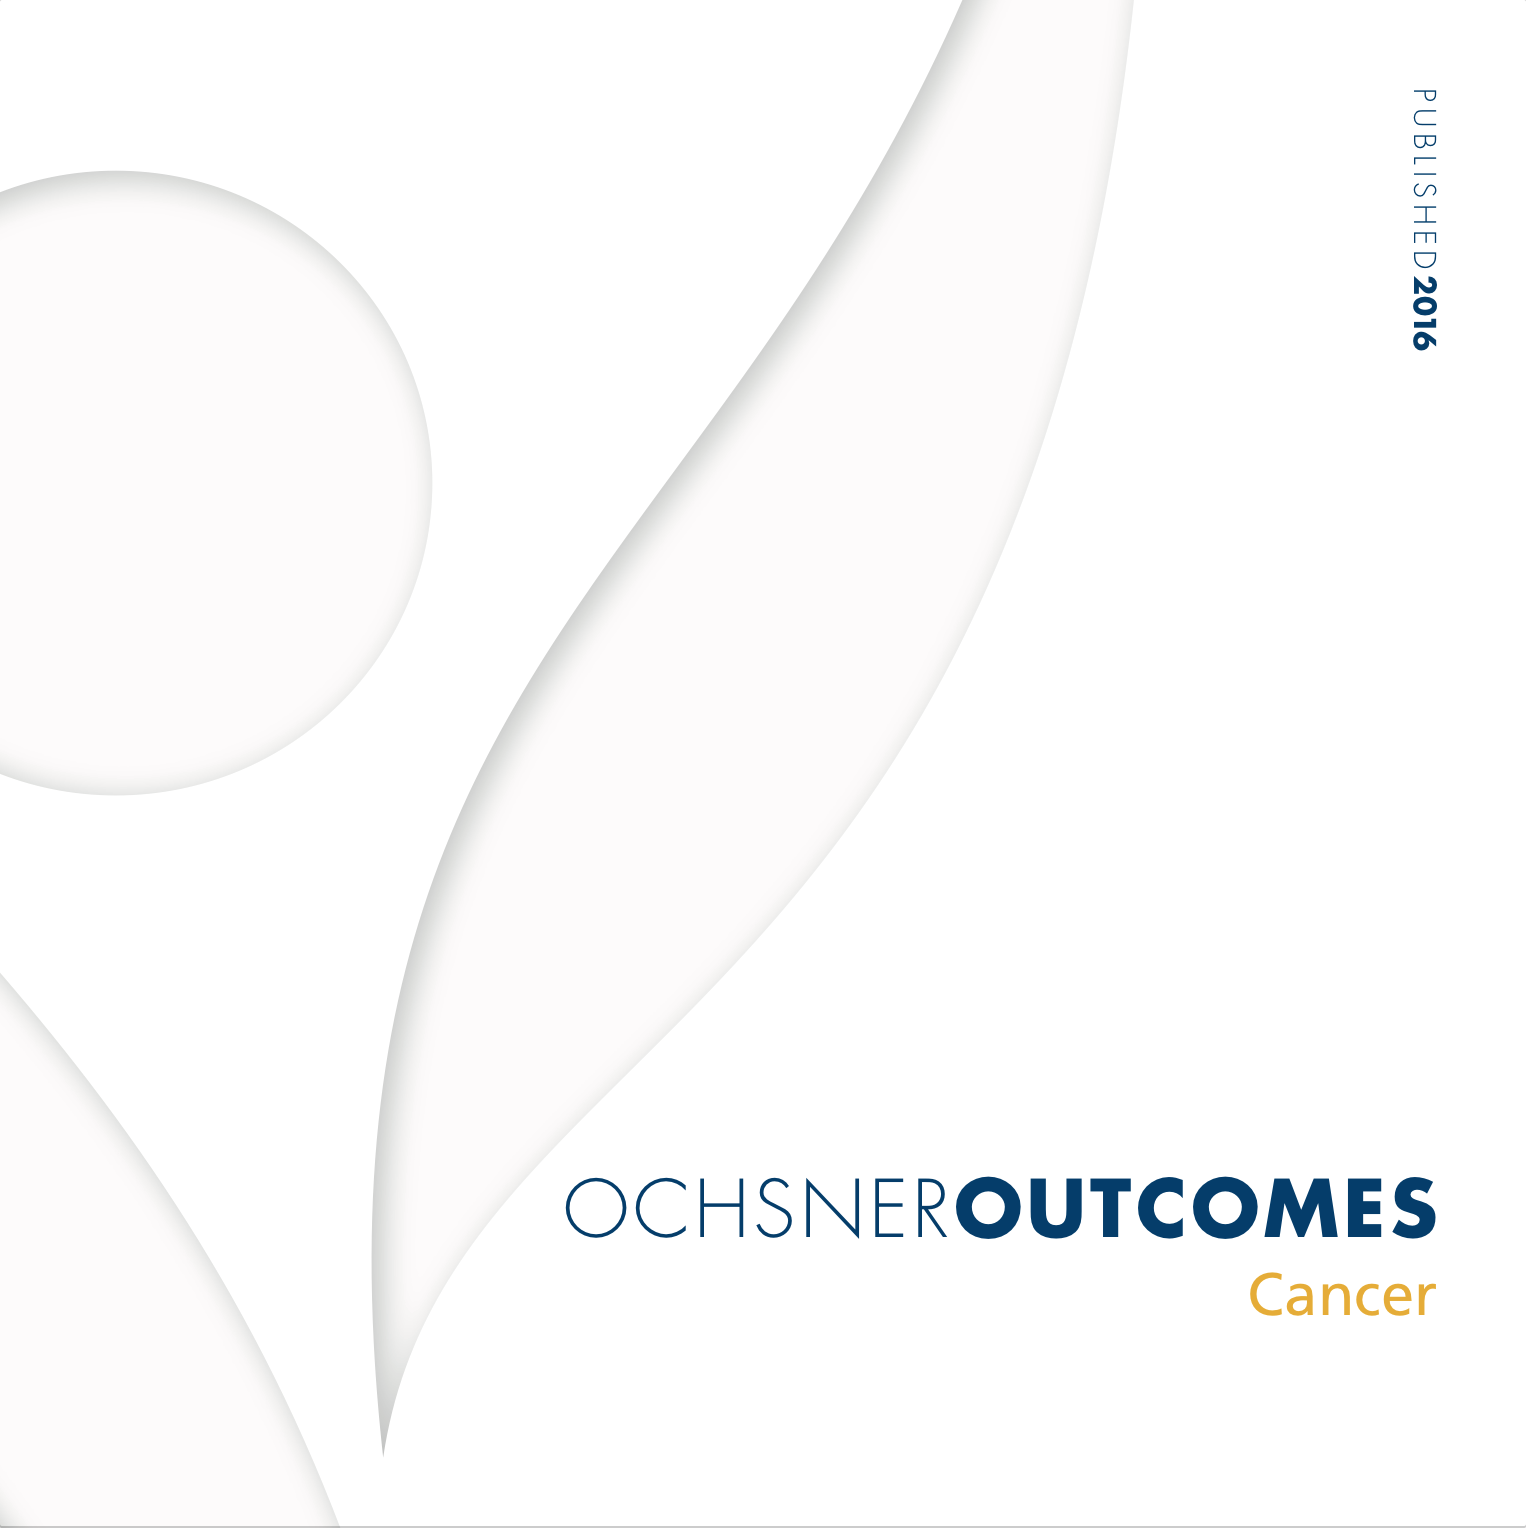 Ochsner Outcomes - Cancer